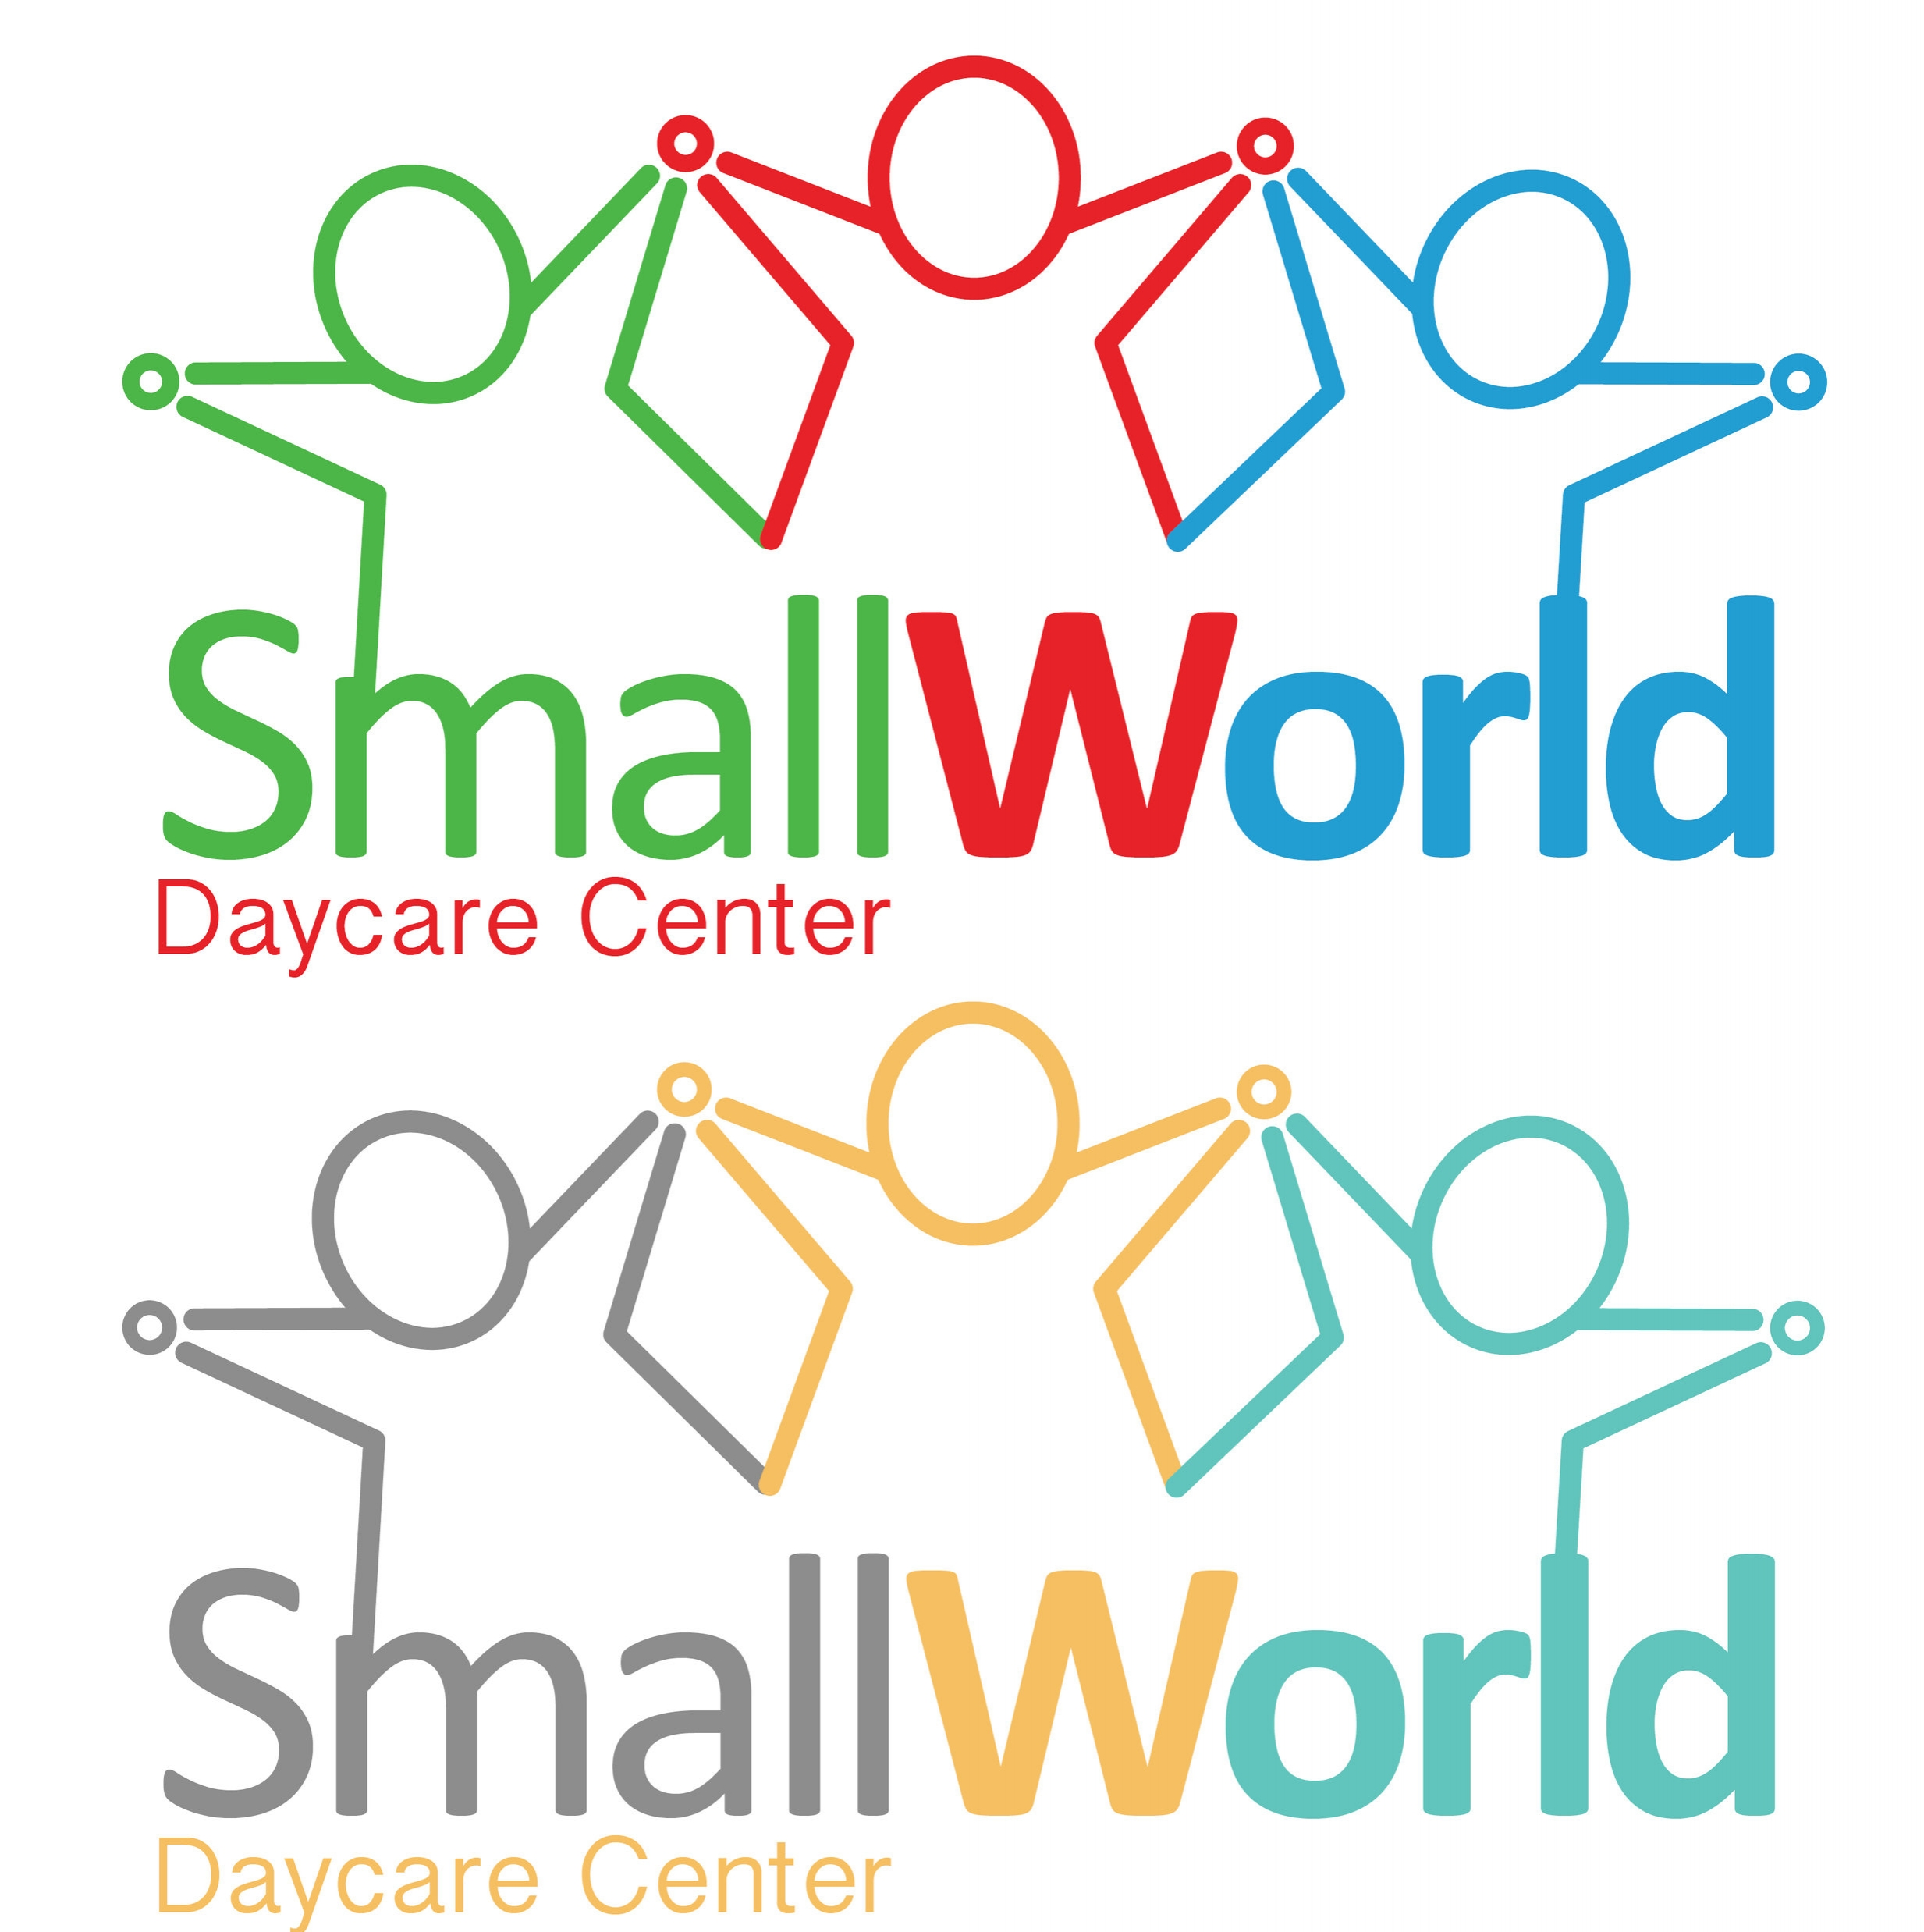 Small World Daycare